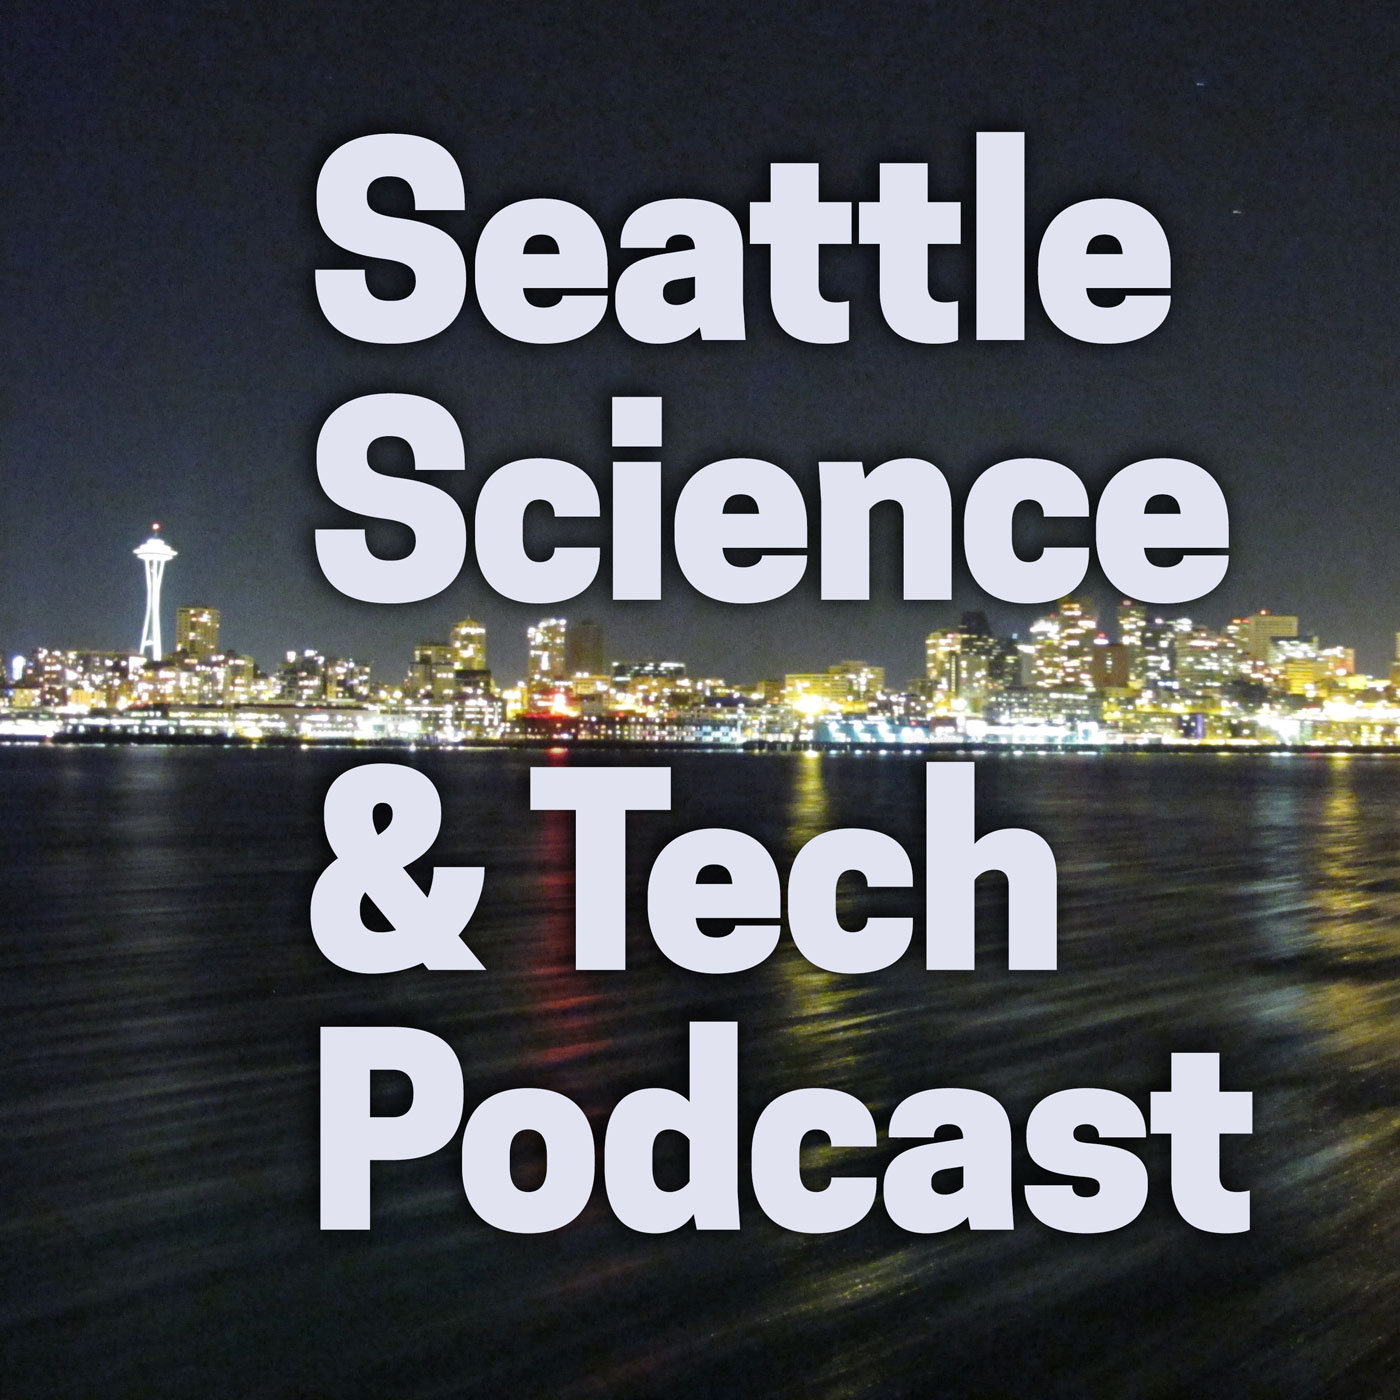 Seattle Science & Tech Podcast